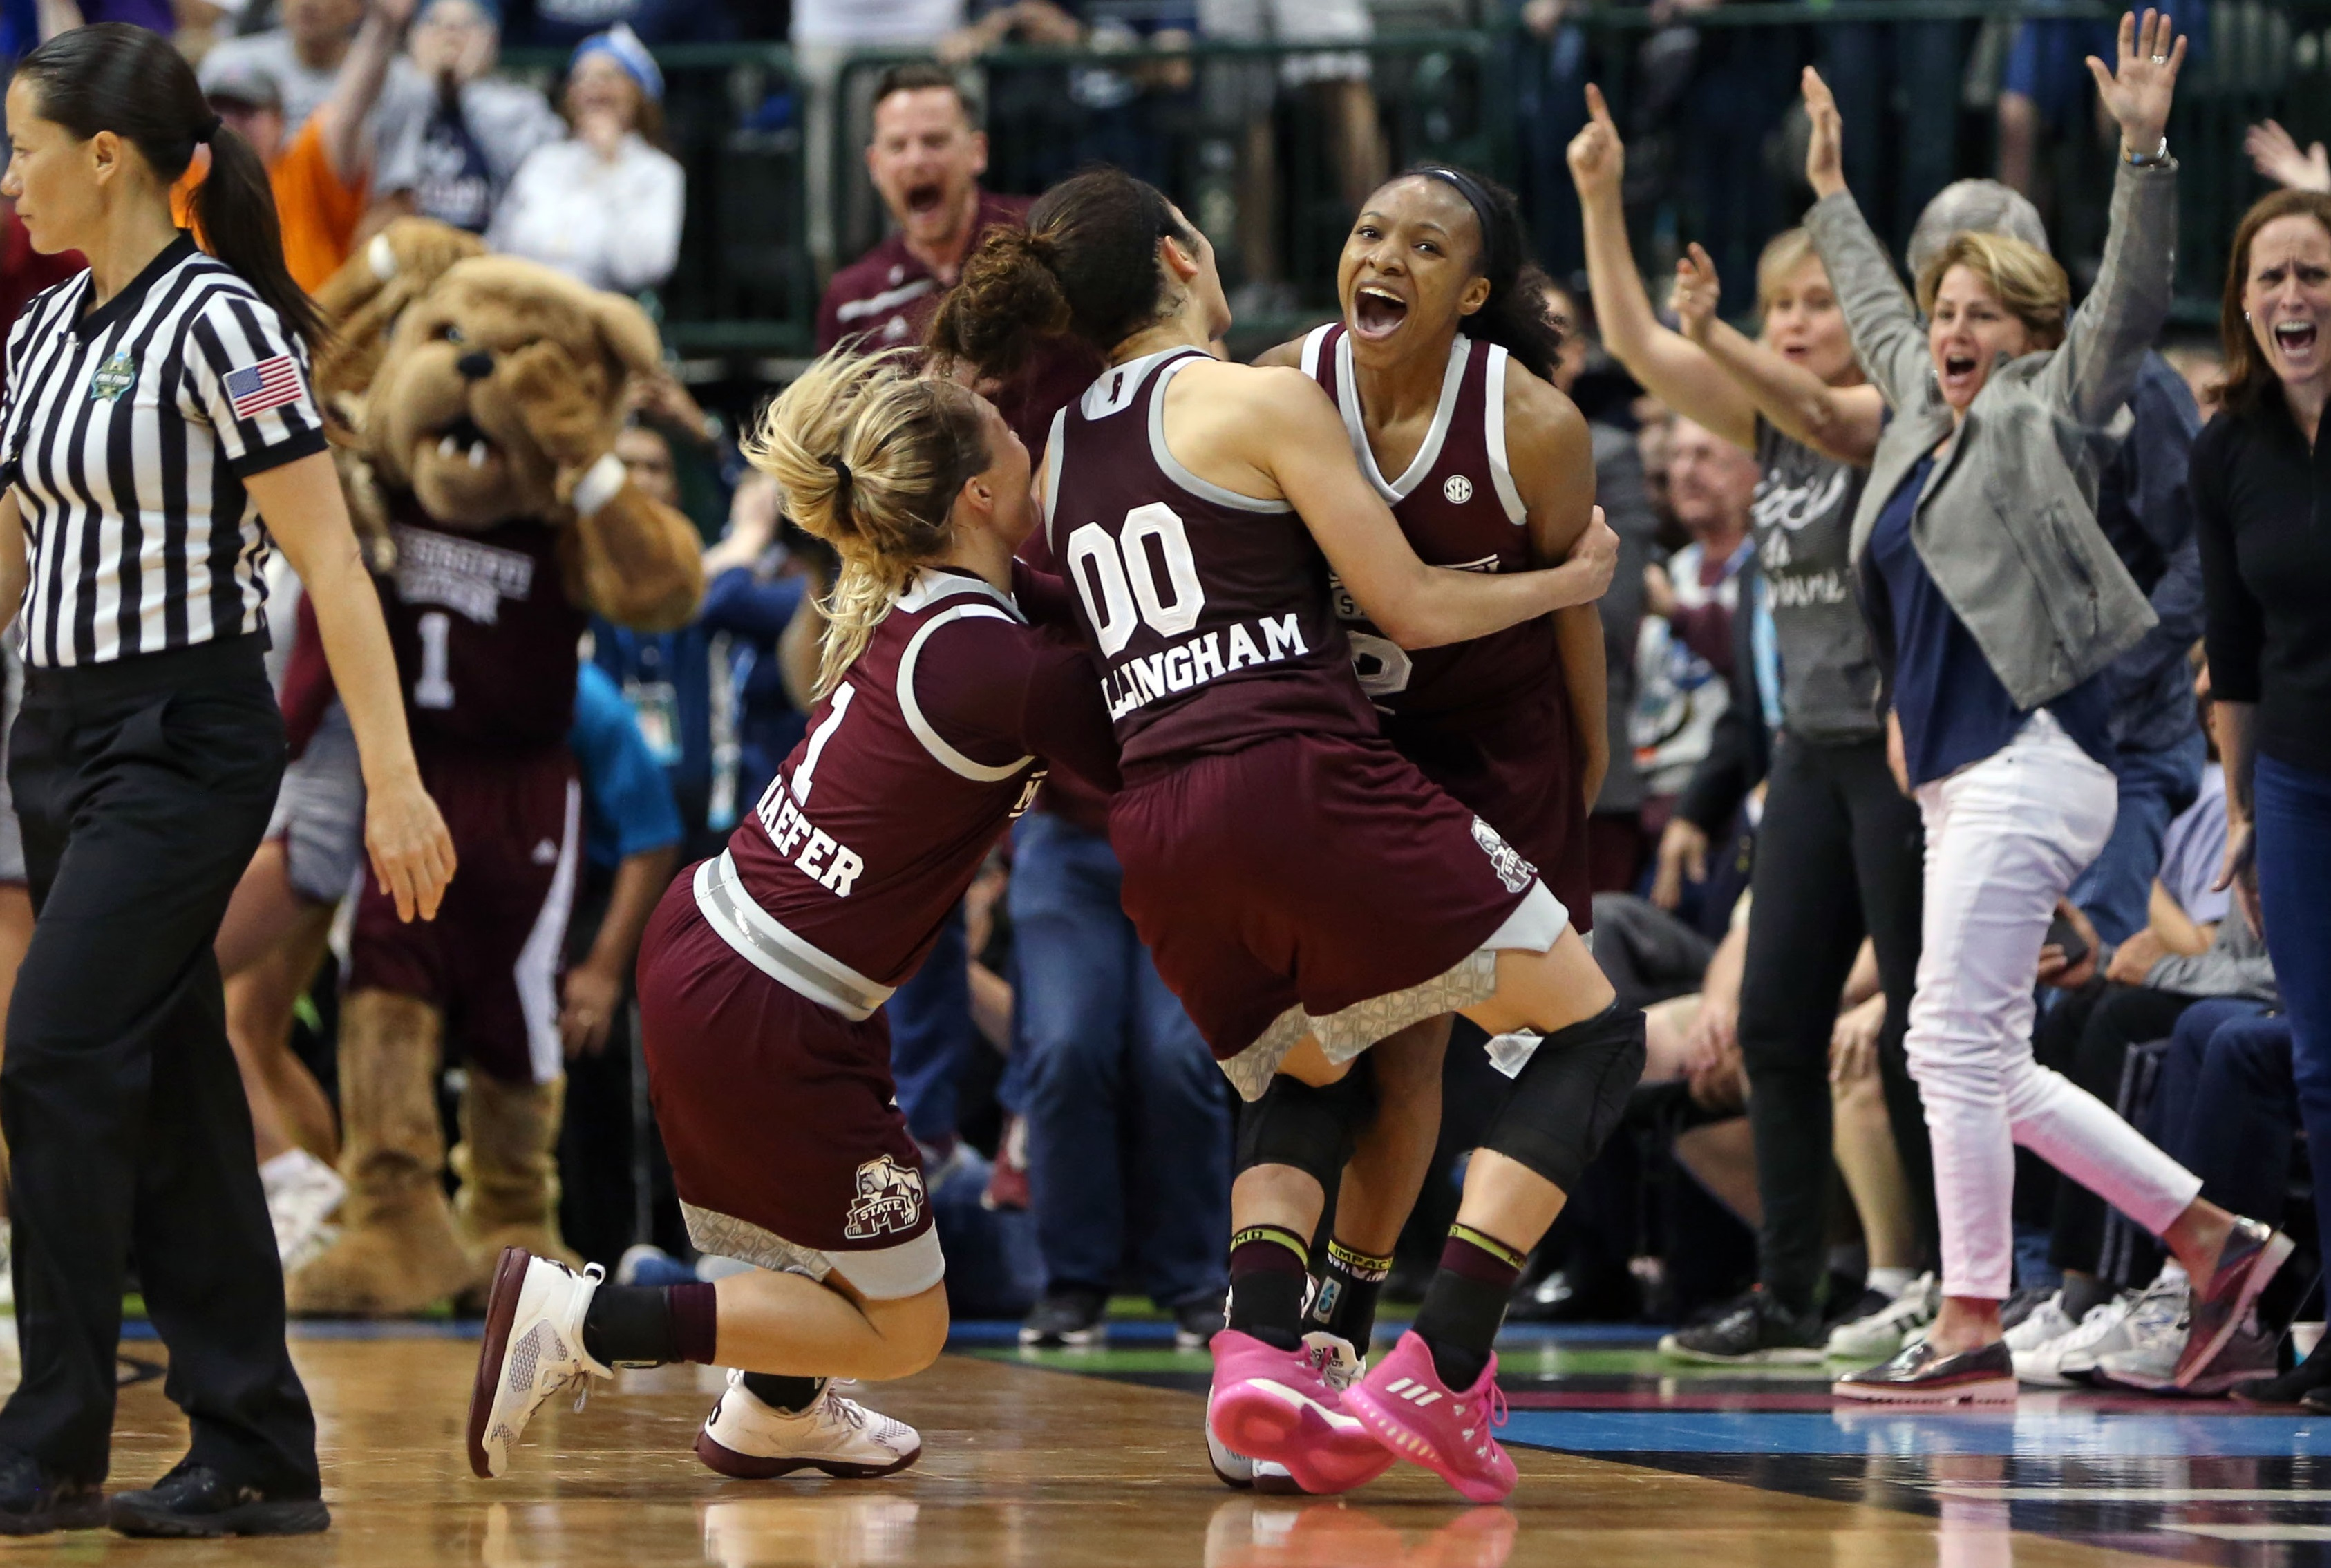 Mar 31, 2017; Dallas, TX, USA; Mississippi State Lady Bulldogs guard Blair Schaefer (1) and guard Dominique Dillingham (00) and guard Morgan William (2) celebrate defeating the Connecticut Huskies in overtime in the semifinals of the women's Final Four at American Airlines Center. Mandatory Credit: Kevin Jairaj-USA TODAY Sports